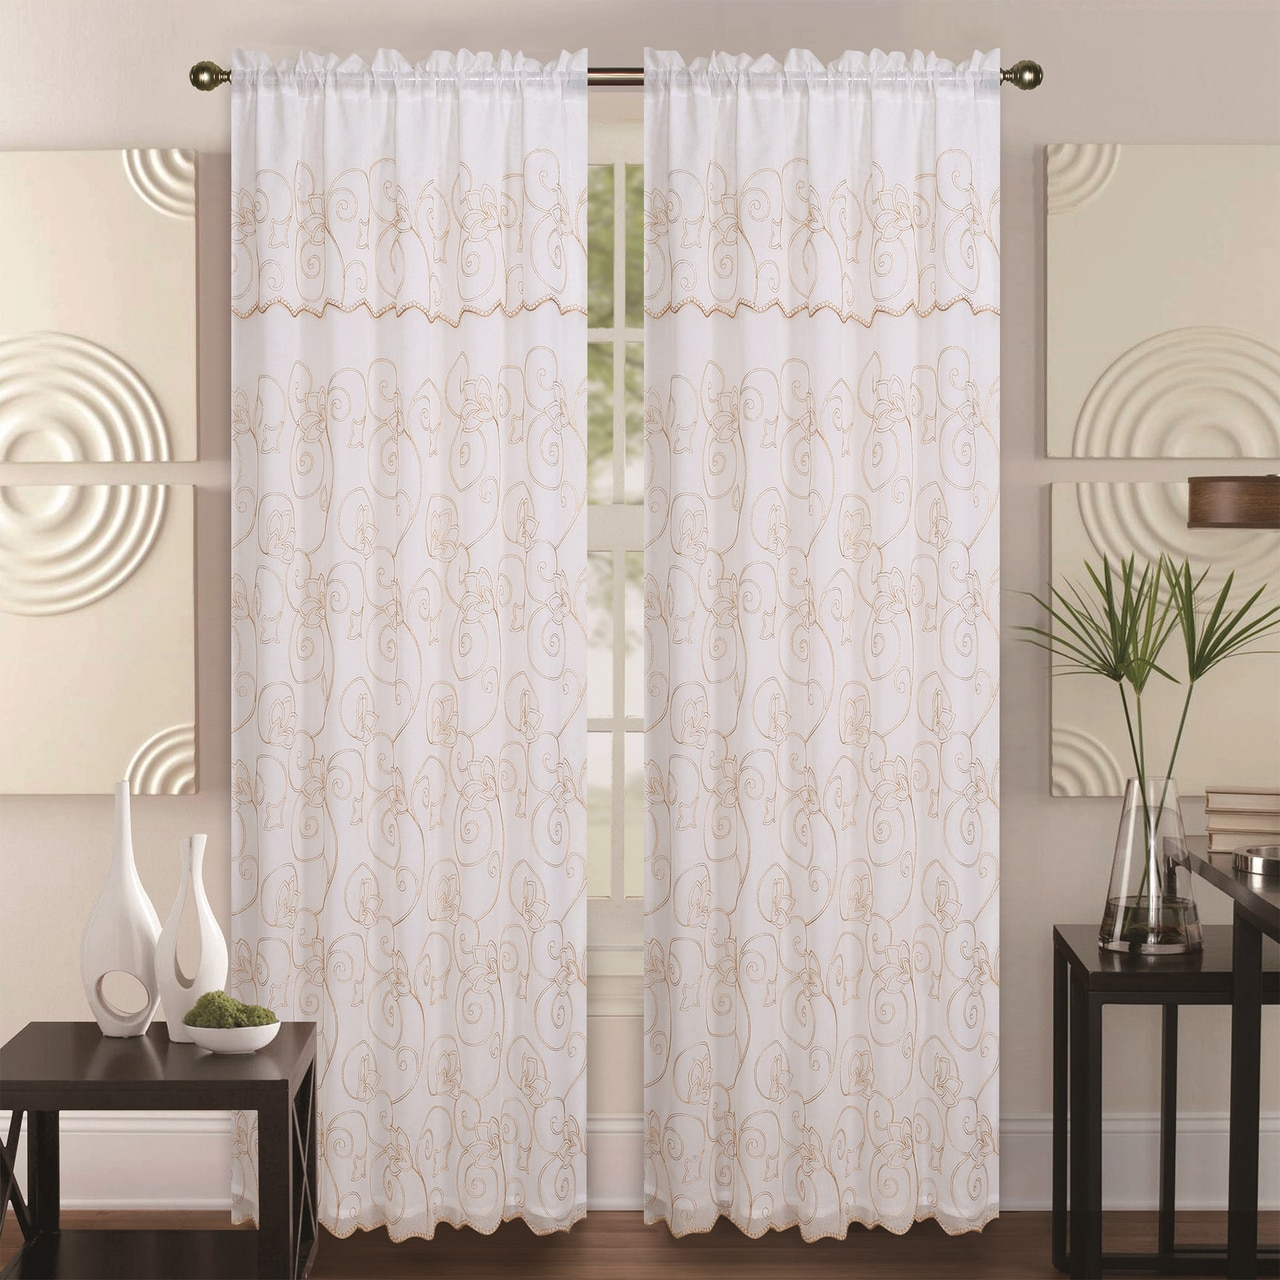 Double Layer Embroidery Floral Sheer Linen Front / Faux Silk Back Rod Pocket Valance Decorative Curtain Panel 55x84 Inch, Selma Single Drape Panel In Ofloral Embroidered Faux Silk Window Curtain Panels (View 4 of 20)